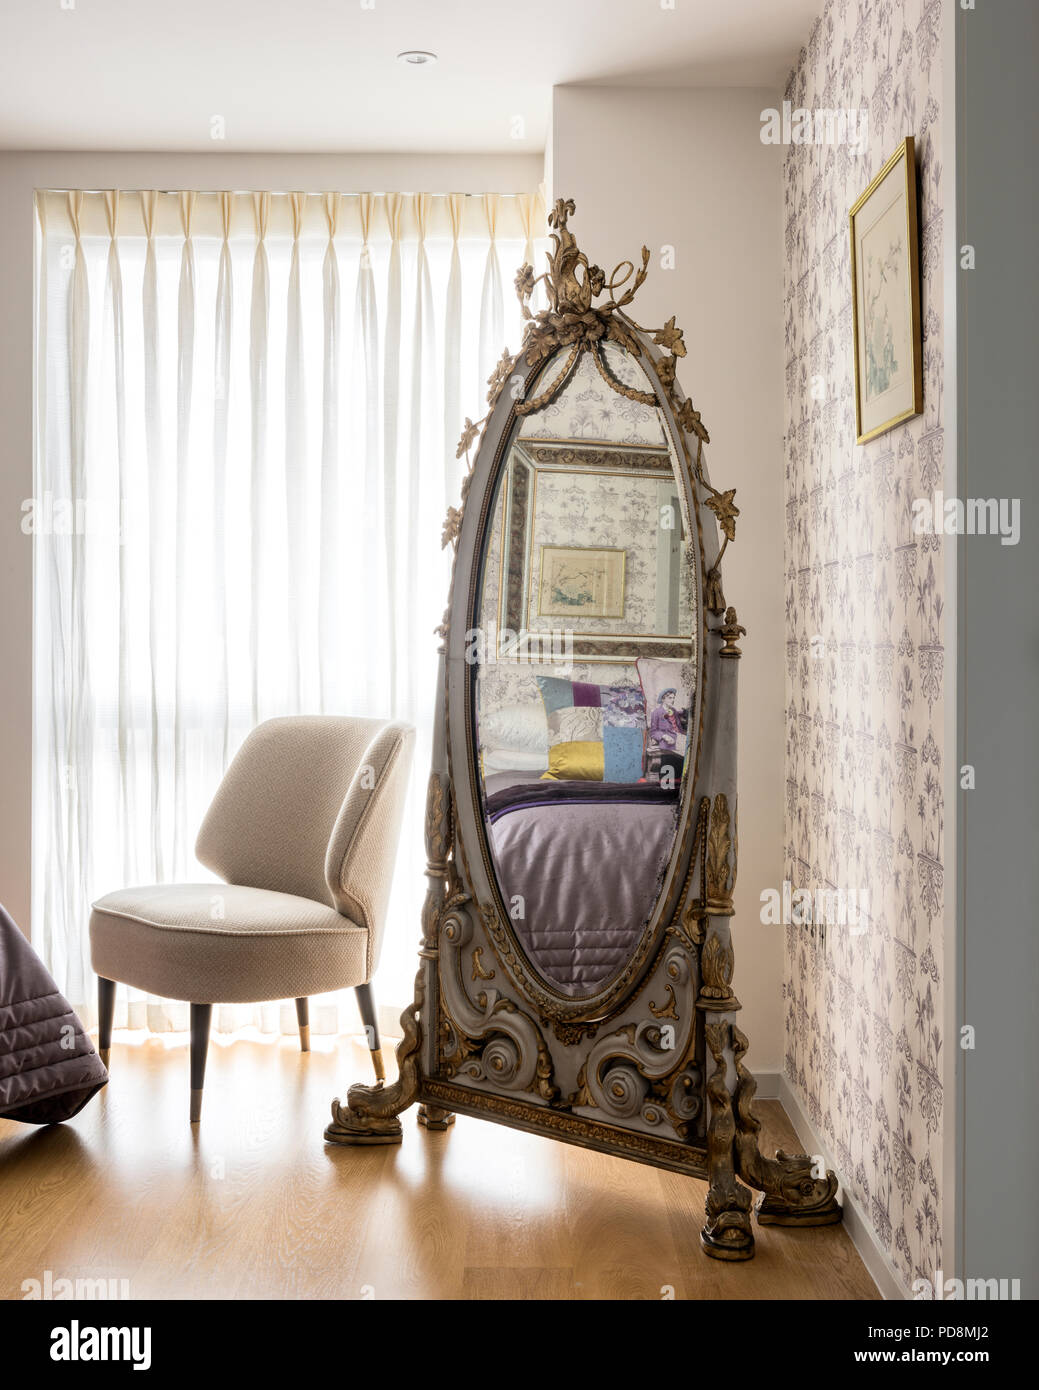 Decorative Full Length Mirror.Decorative Antique Full Length Mirror And Chair With Closed